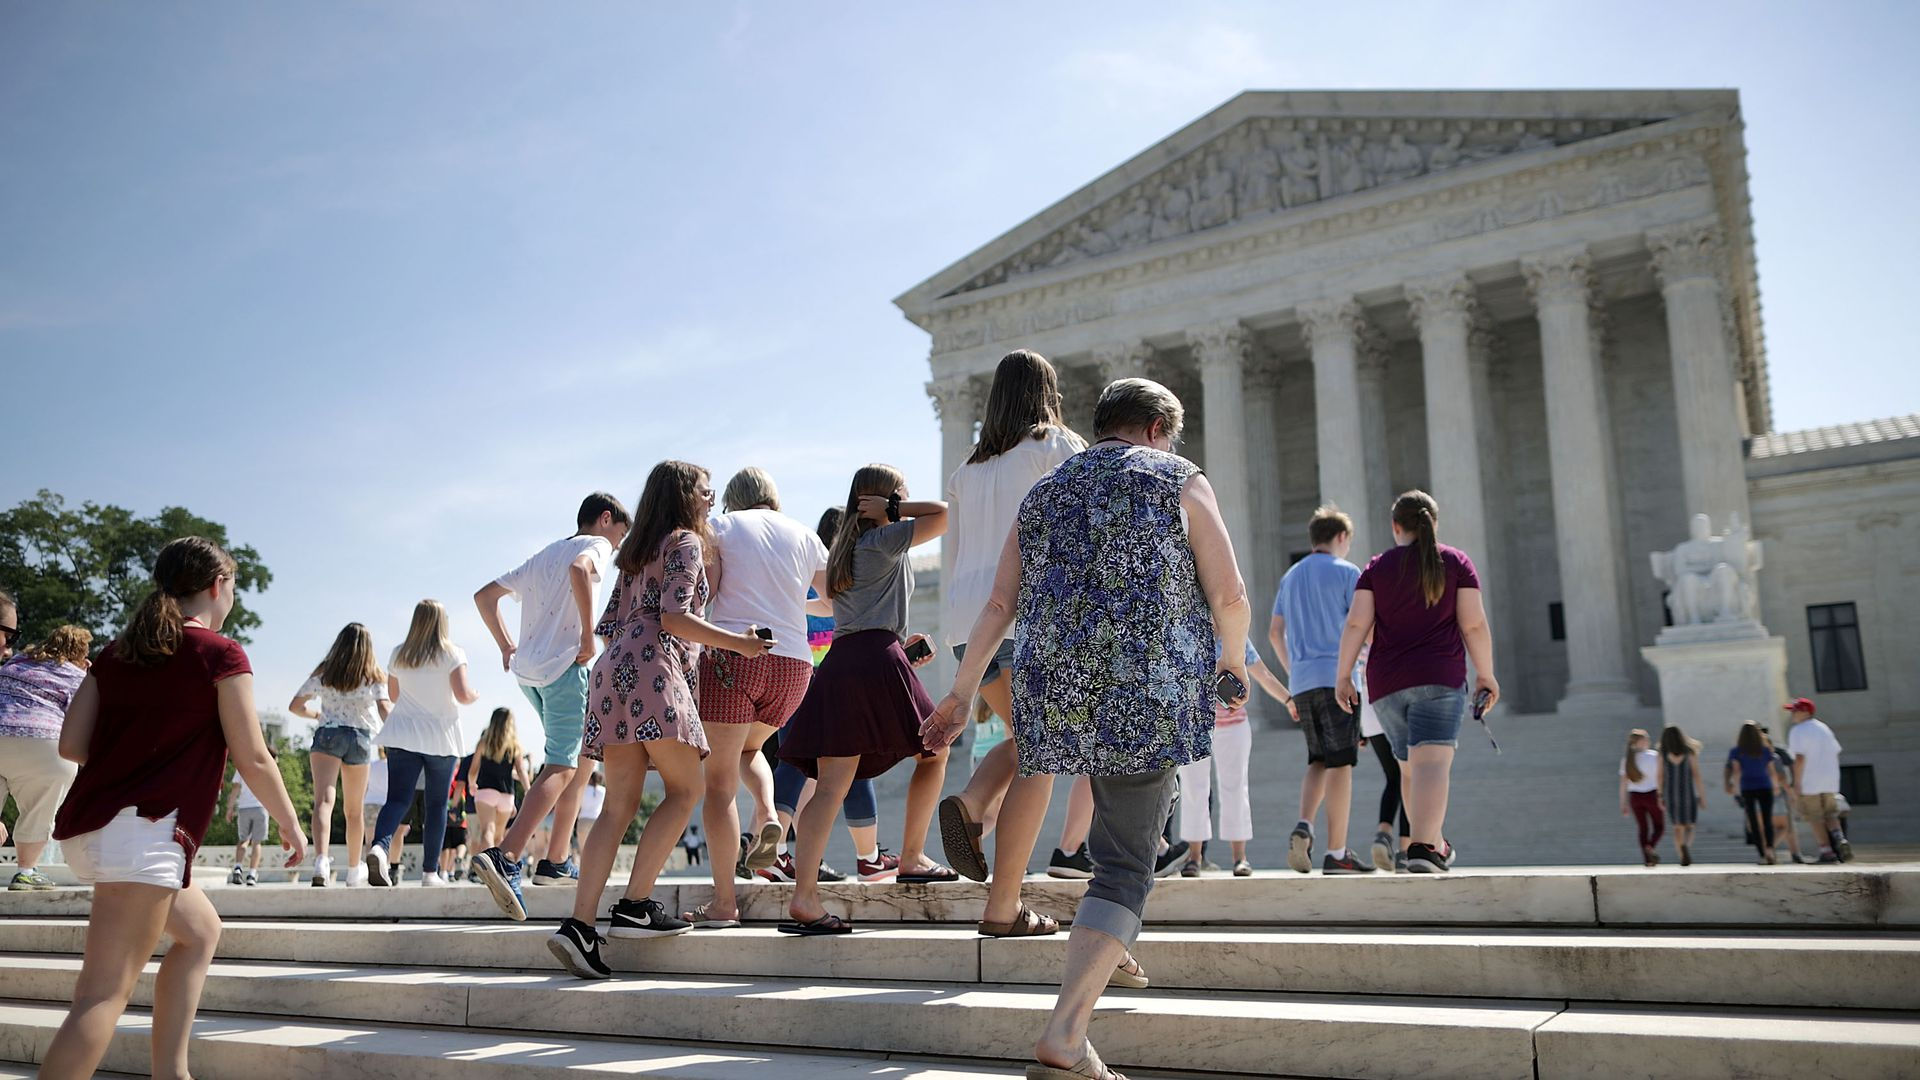 People walking in front of the Supreme Court